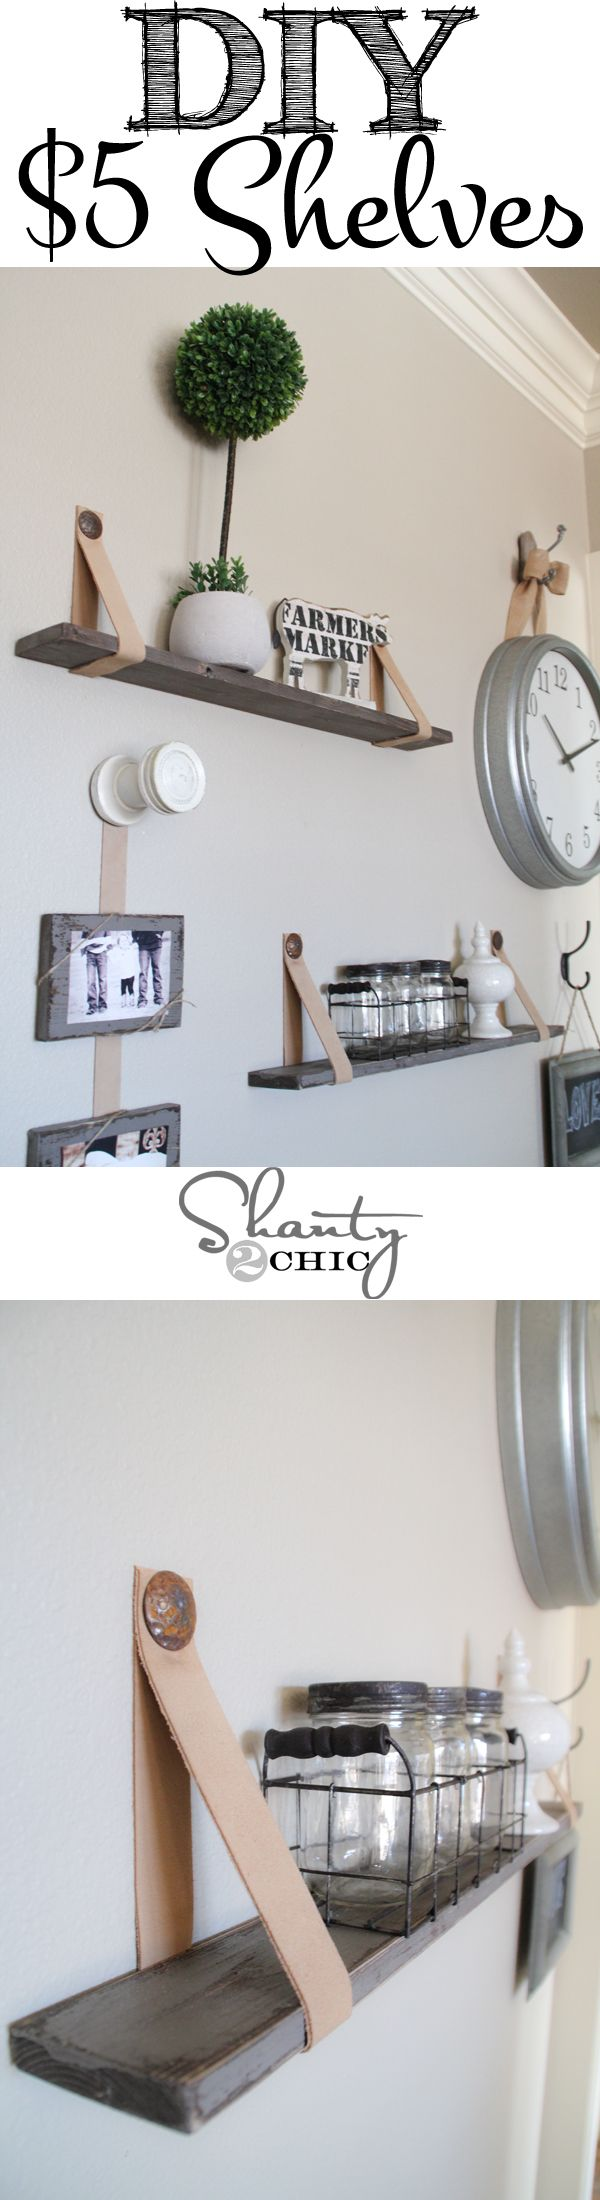 DIY $5 Shelves With Leather Straps